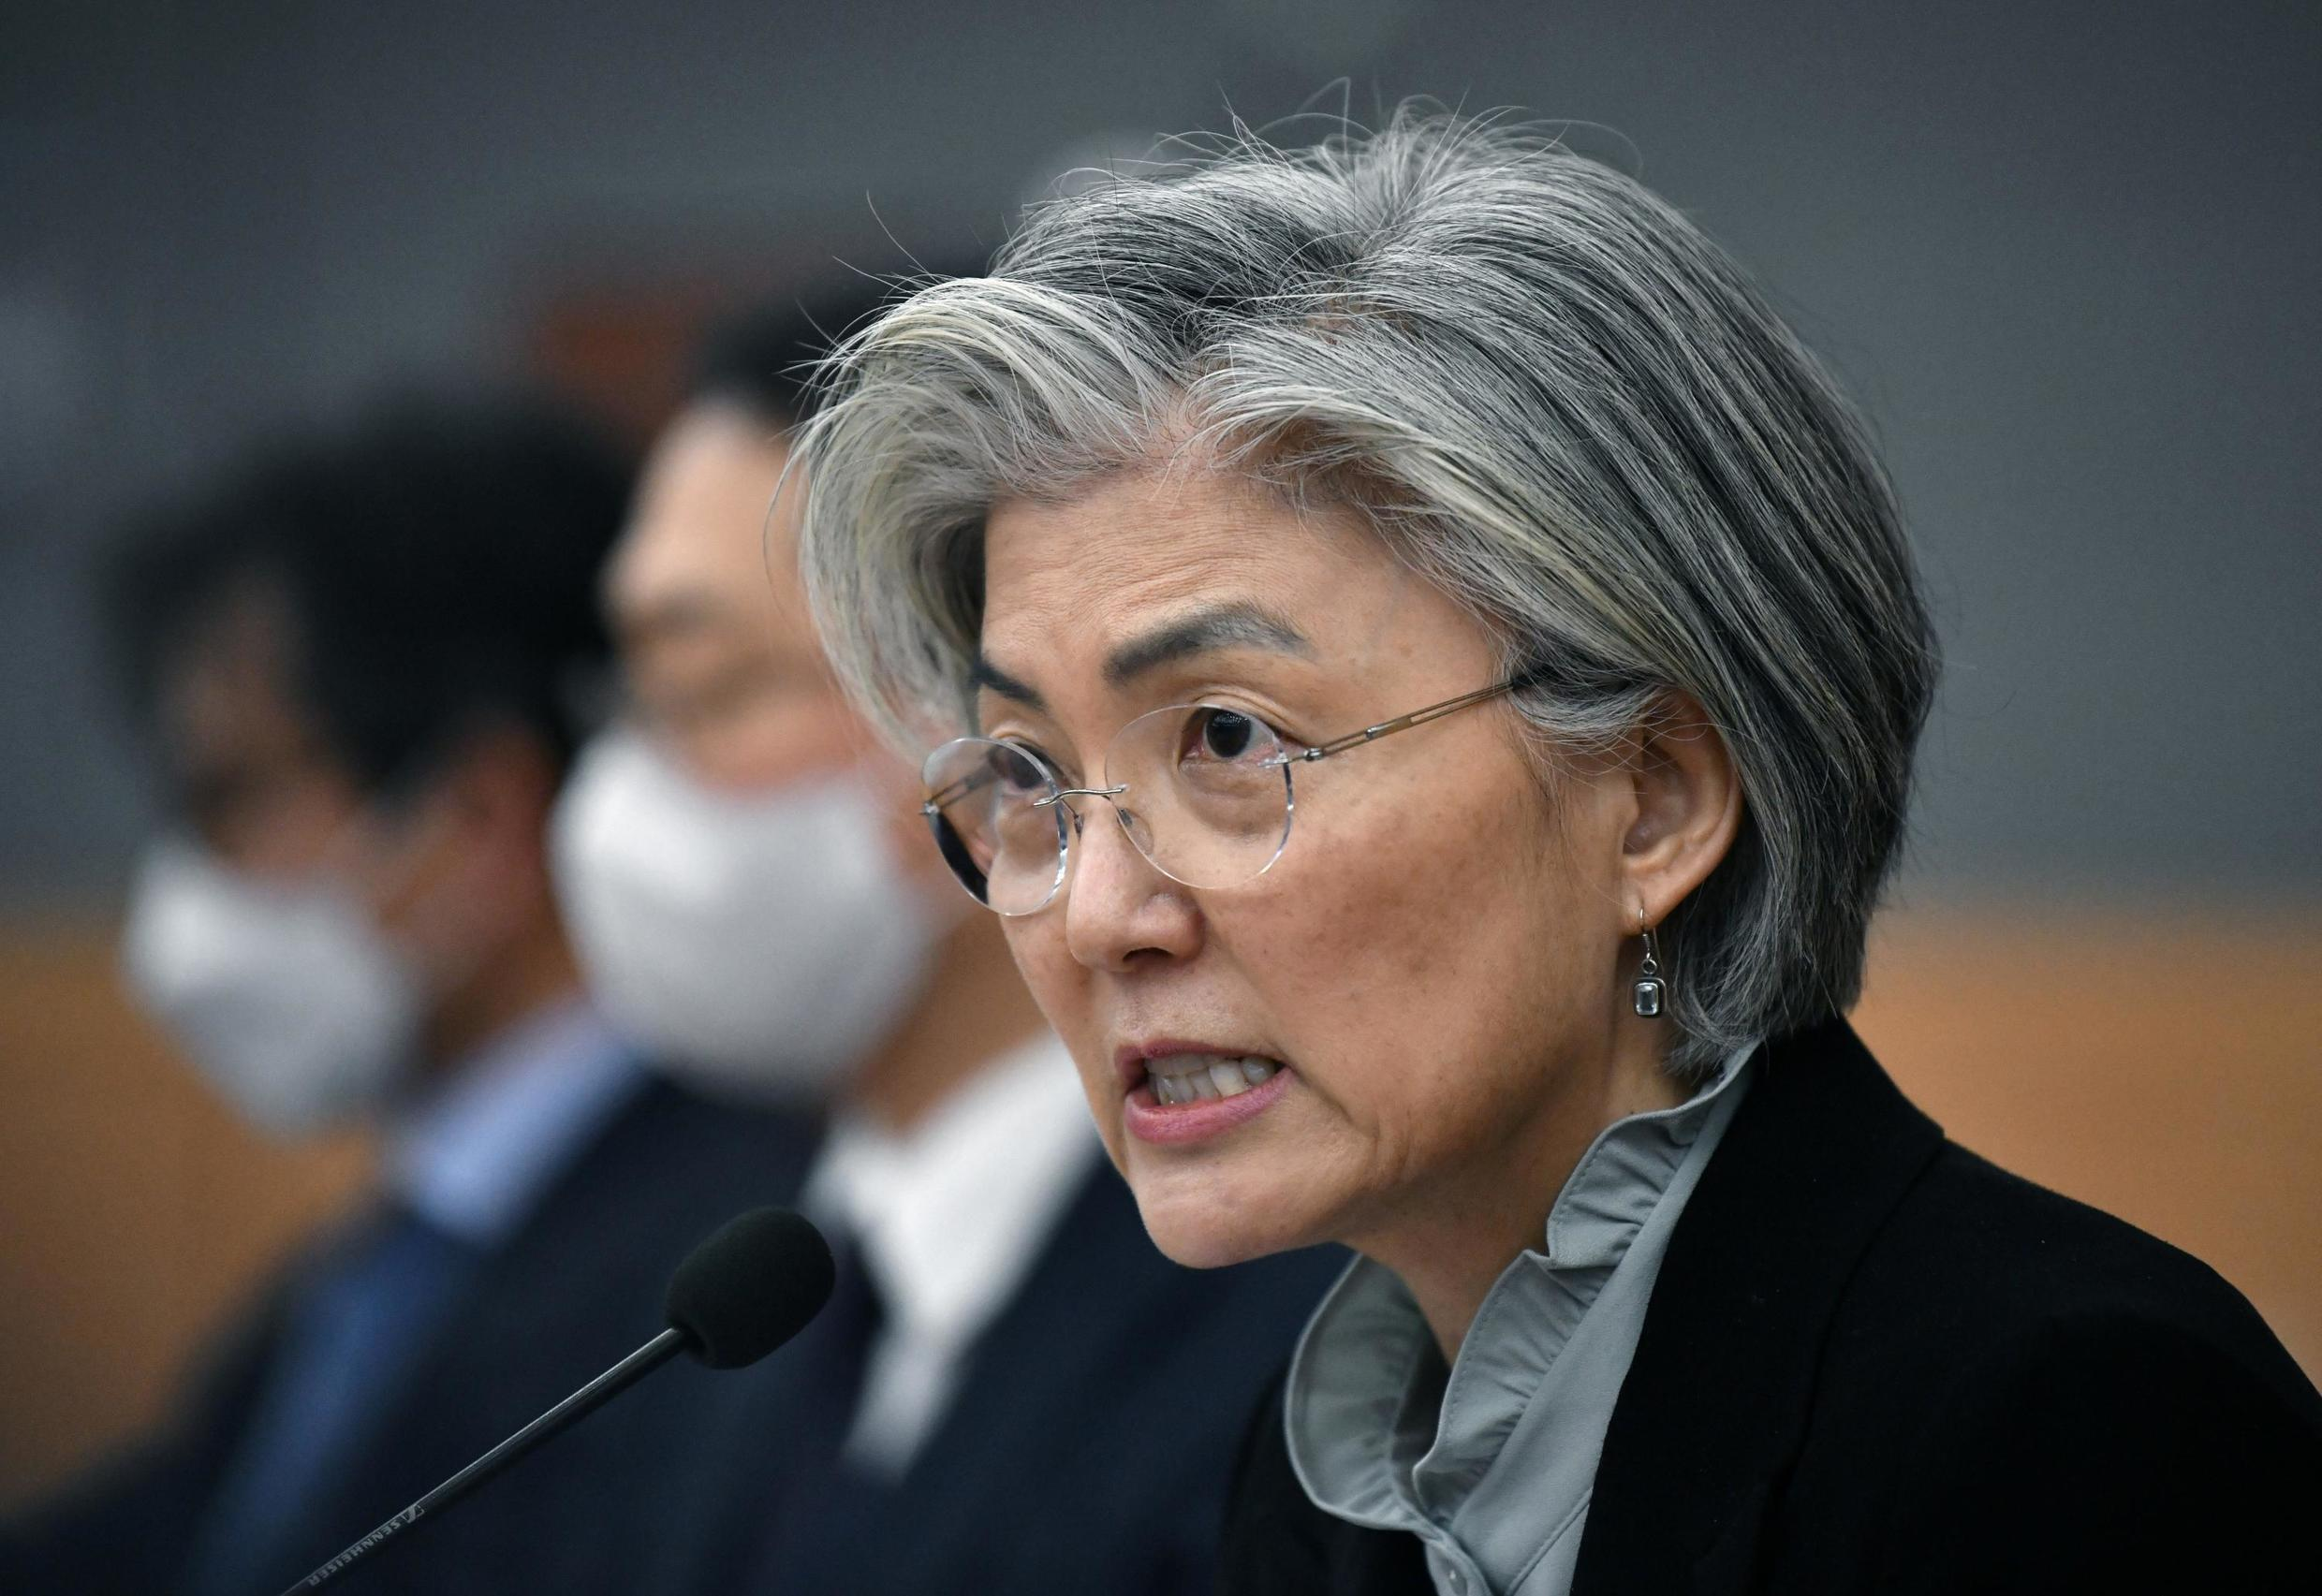 South Korea's foreign affairs minister Kang Kyung-wha speaking to foreign diplomats about the Cornavirus situation, Seoul, 6 March 2020.